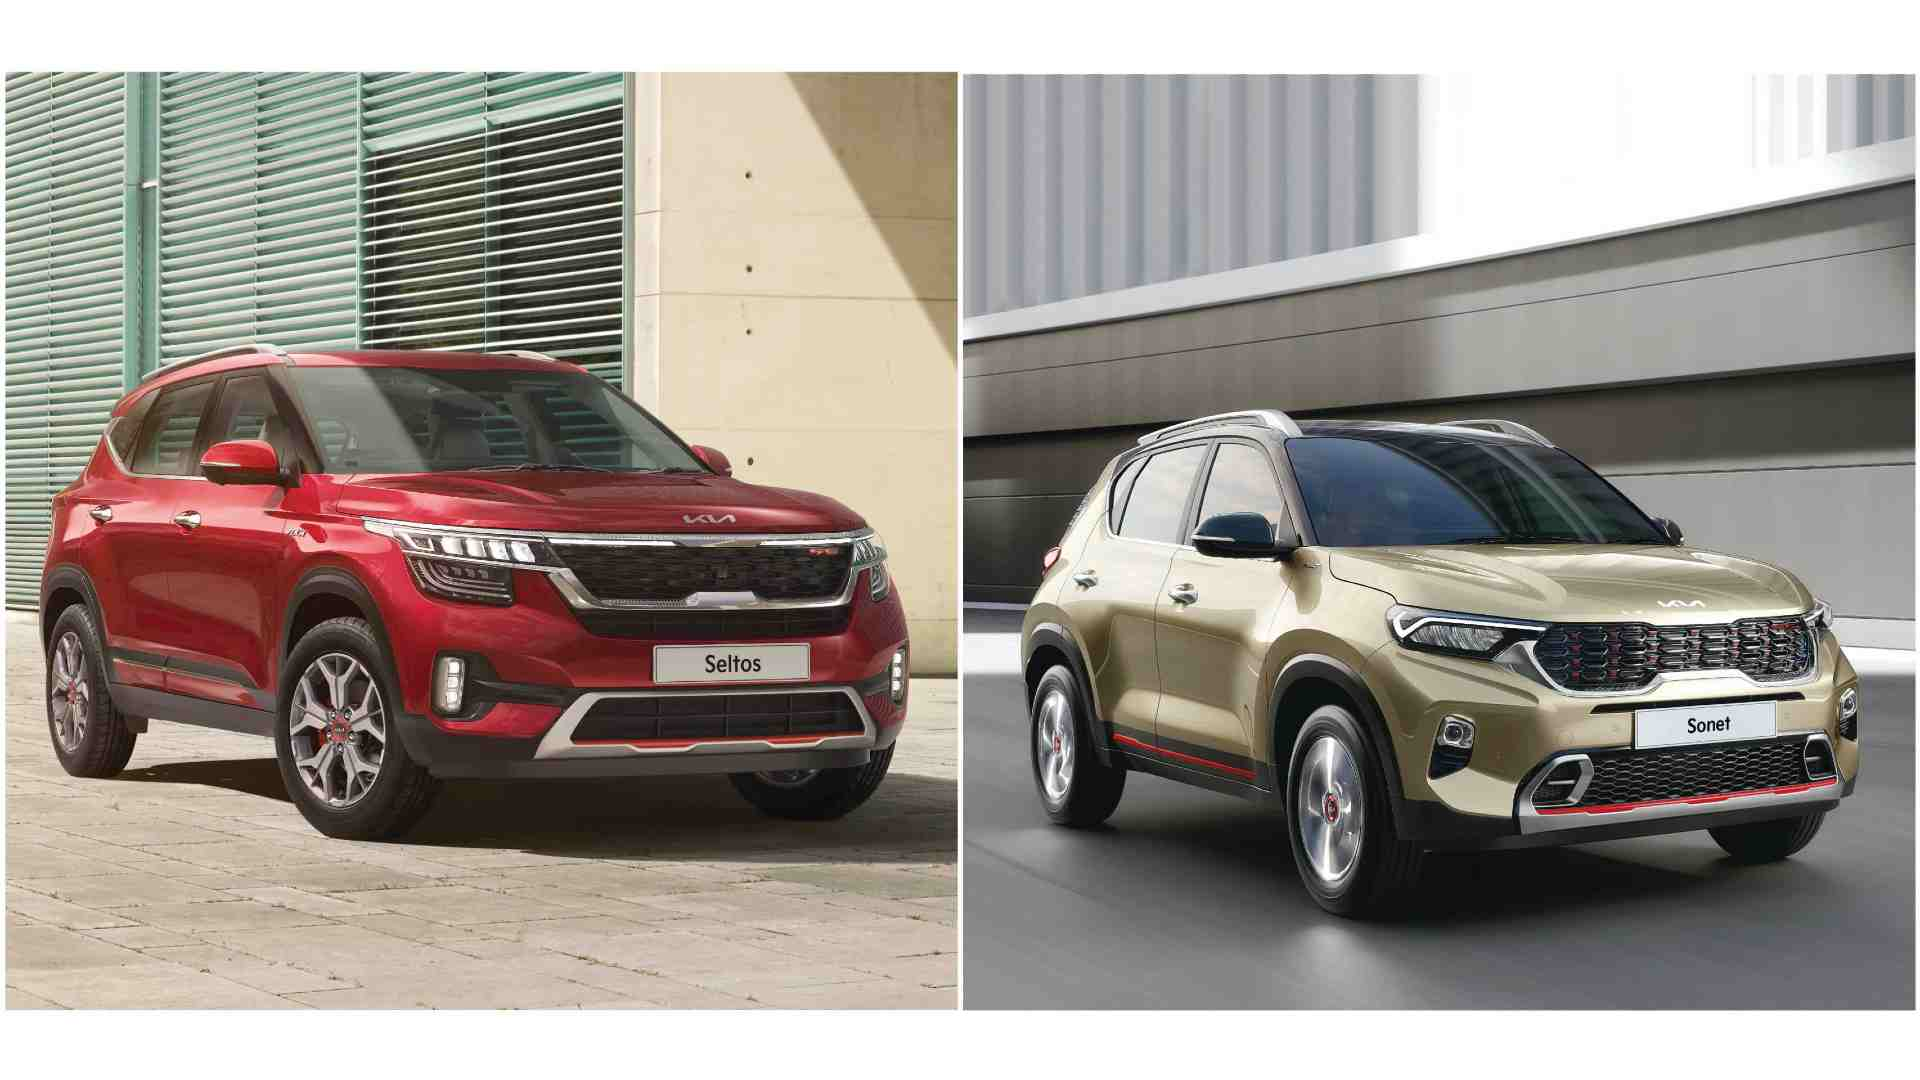 Both the 2021 Kia Seltos as well as the Kia Sonet now offer electronic stability control in a wider range of variants. Image: Kia